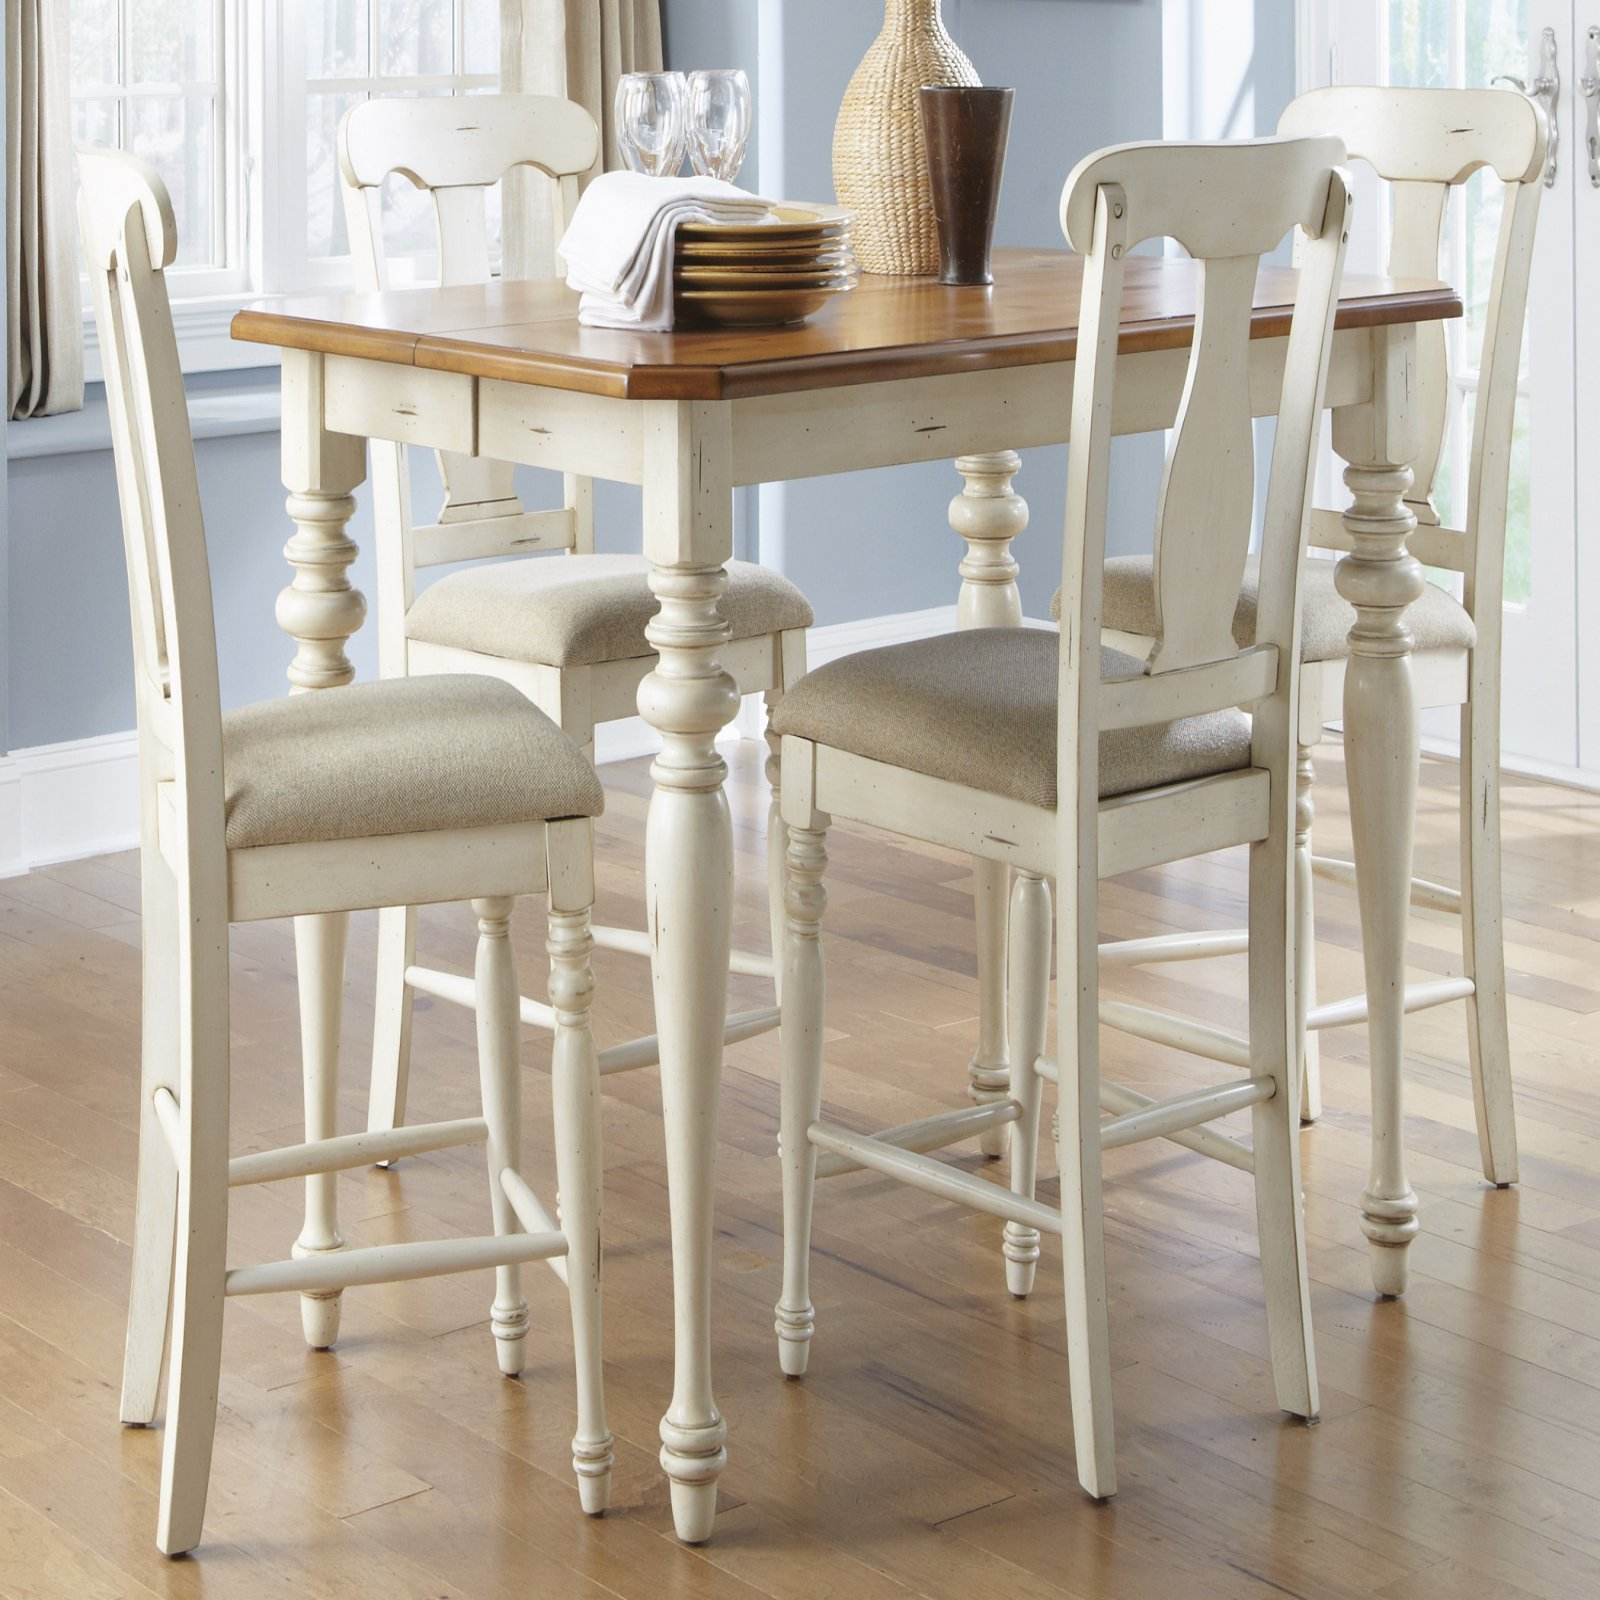 Liberty Furniture Ocean Isle 5 pc. Counter Height Set with Splat Back Chairs